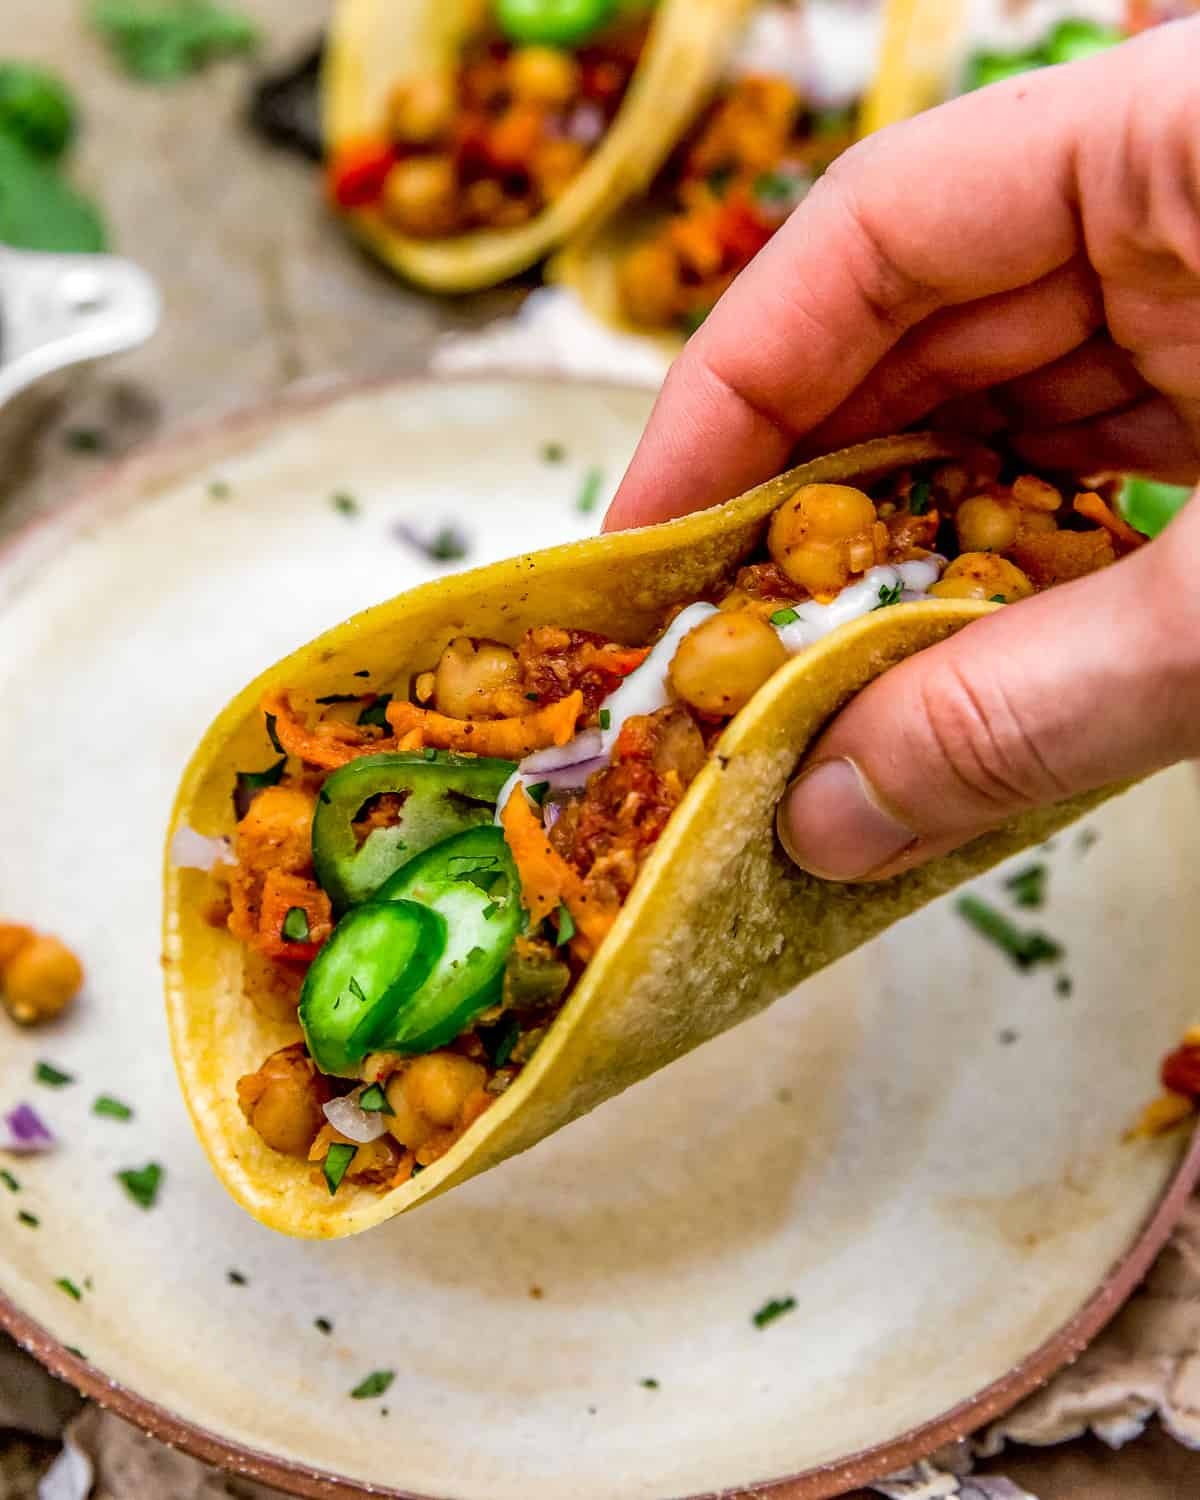 Eating a Spicy Moroccan Tacos